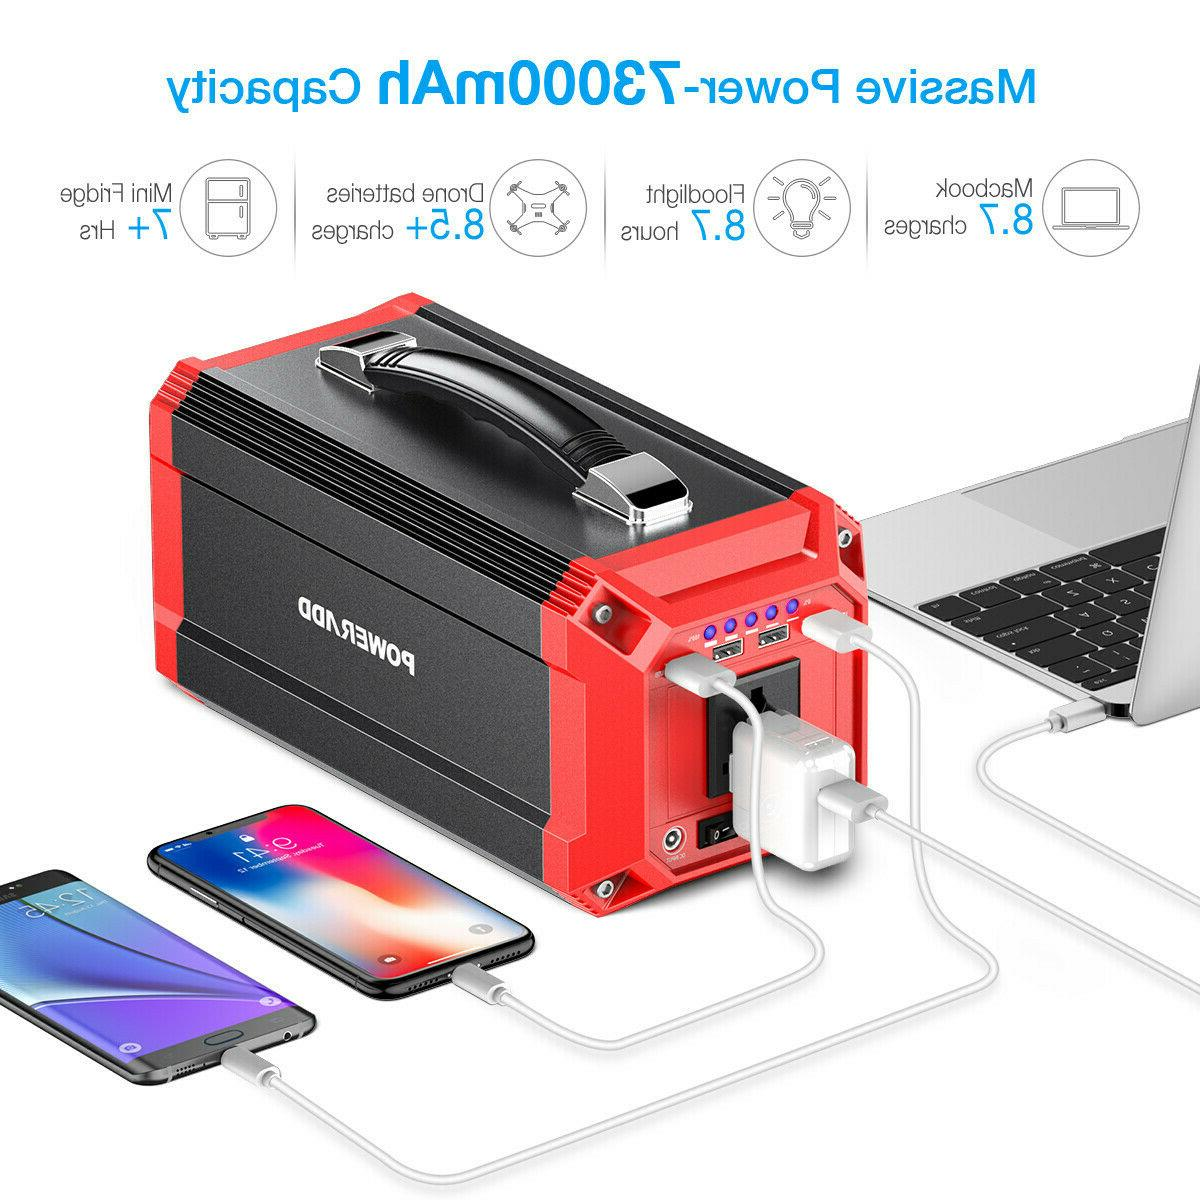 NEW GOALZERO FLIP 30 PHONE & TABLET CHARGER 7800 mAh COLOR: